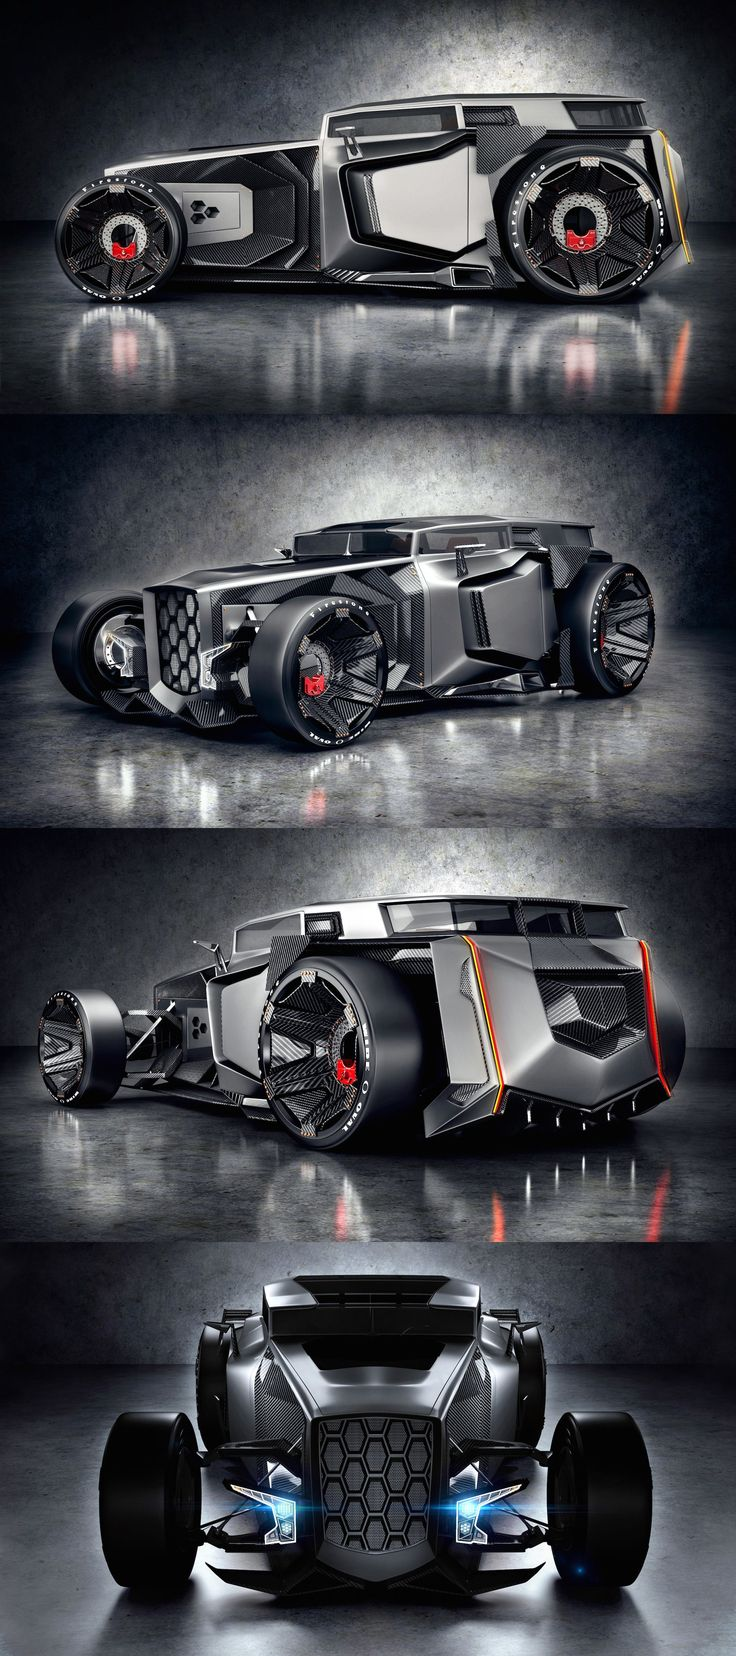 Now that Lambo is a million miles from their normal look , obviously a type of 'Rat rod ' on speed to facilitate speed 0 to 100 at light speed similar to the Star Wars special effects of blurred out stars as travel so amazingly fast , but only suited to straight line drag racing format as Rat rod specialist machine , but memorable , very memorable #conceptcars